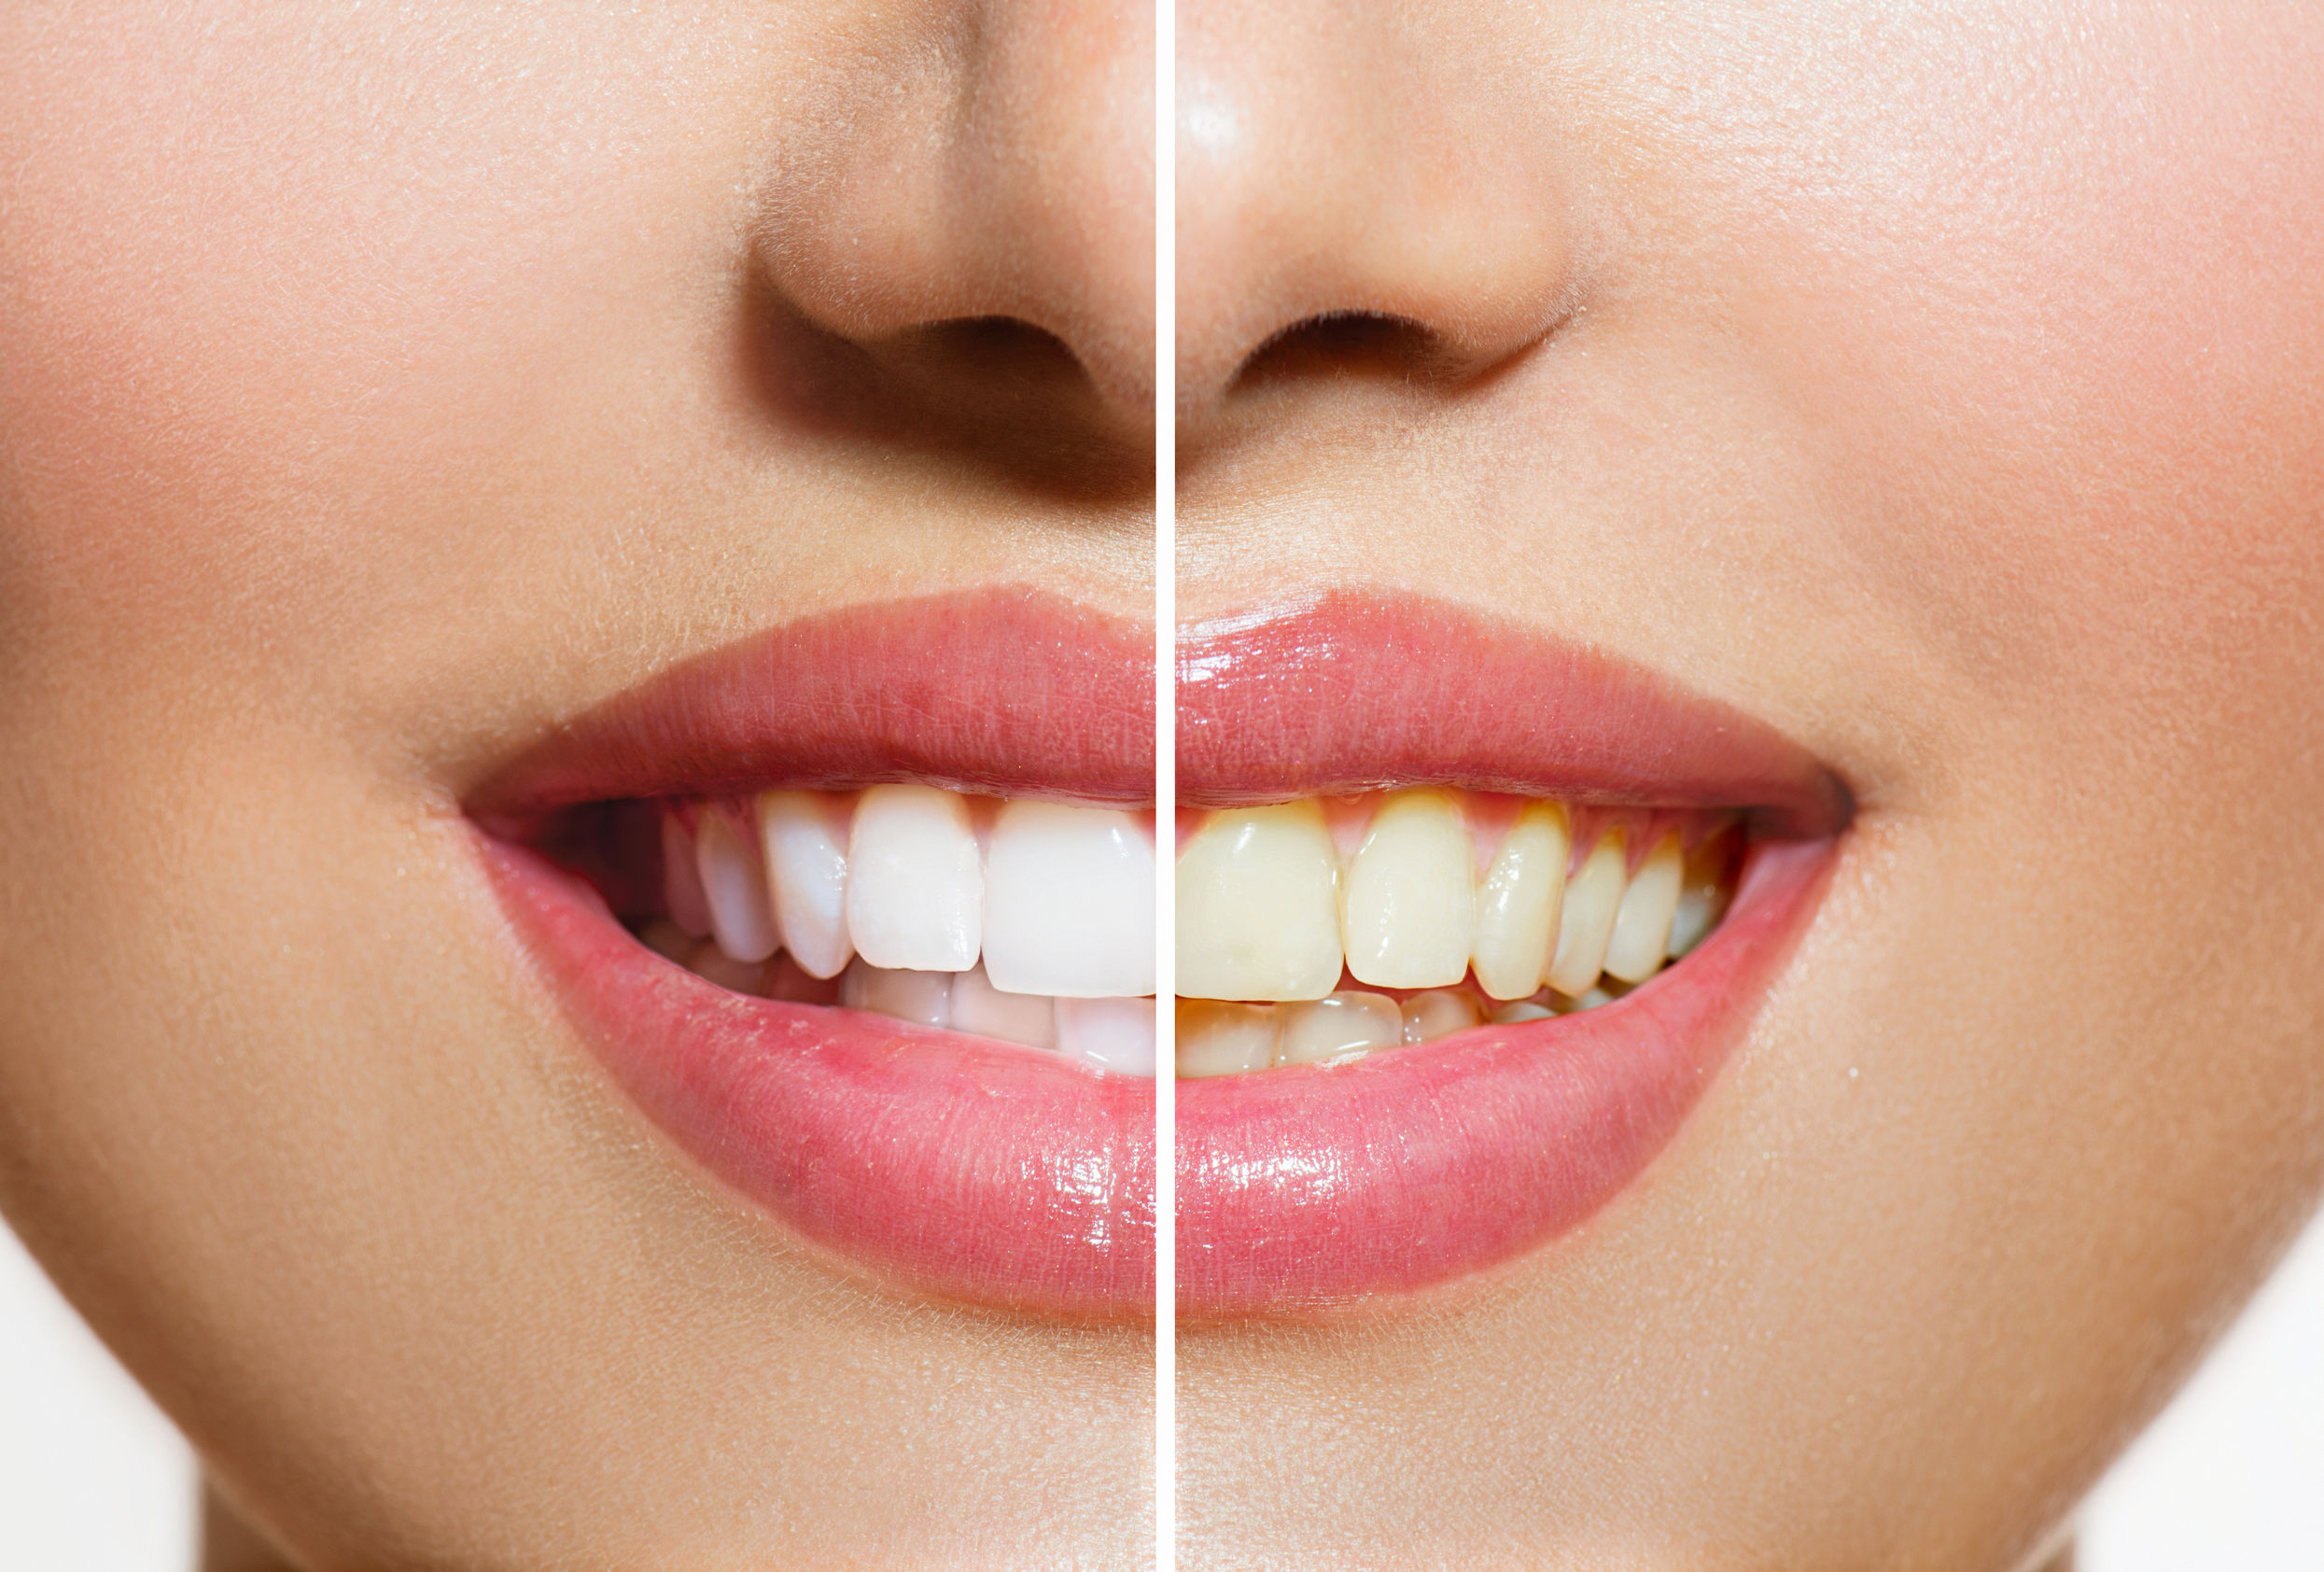 Where Can I Get Peoria Teeth Whitening Treatment?